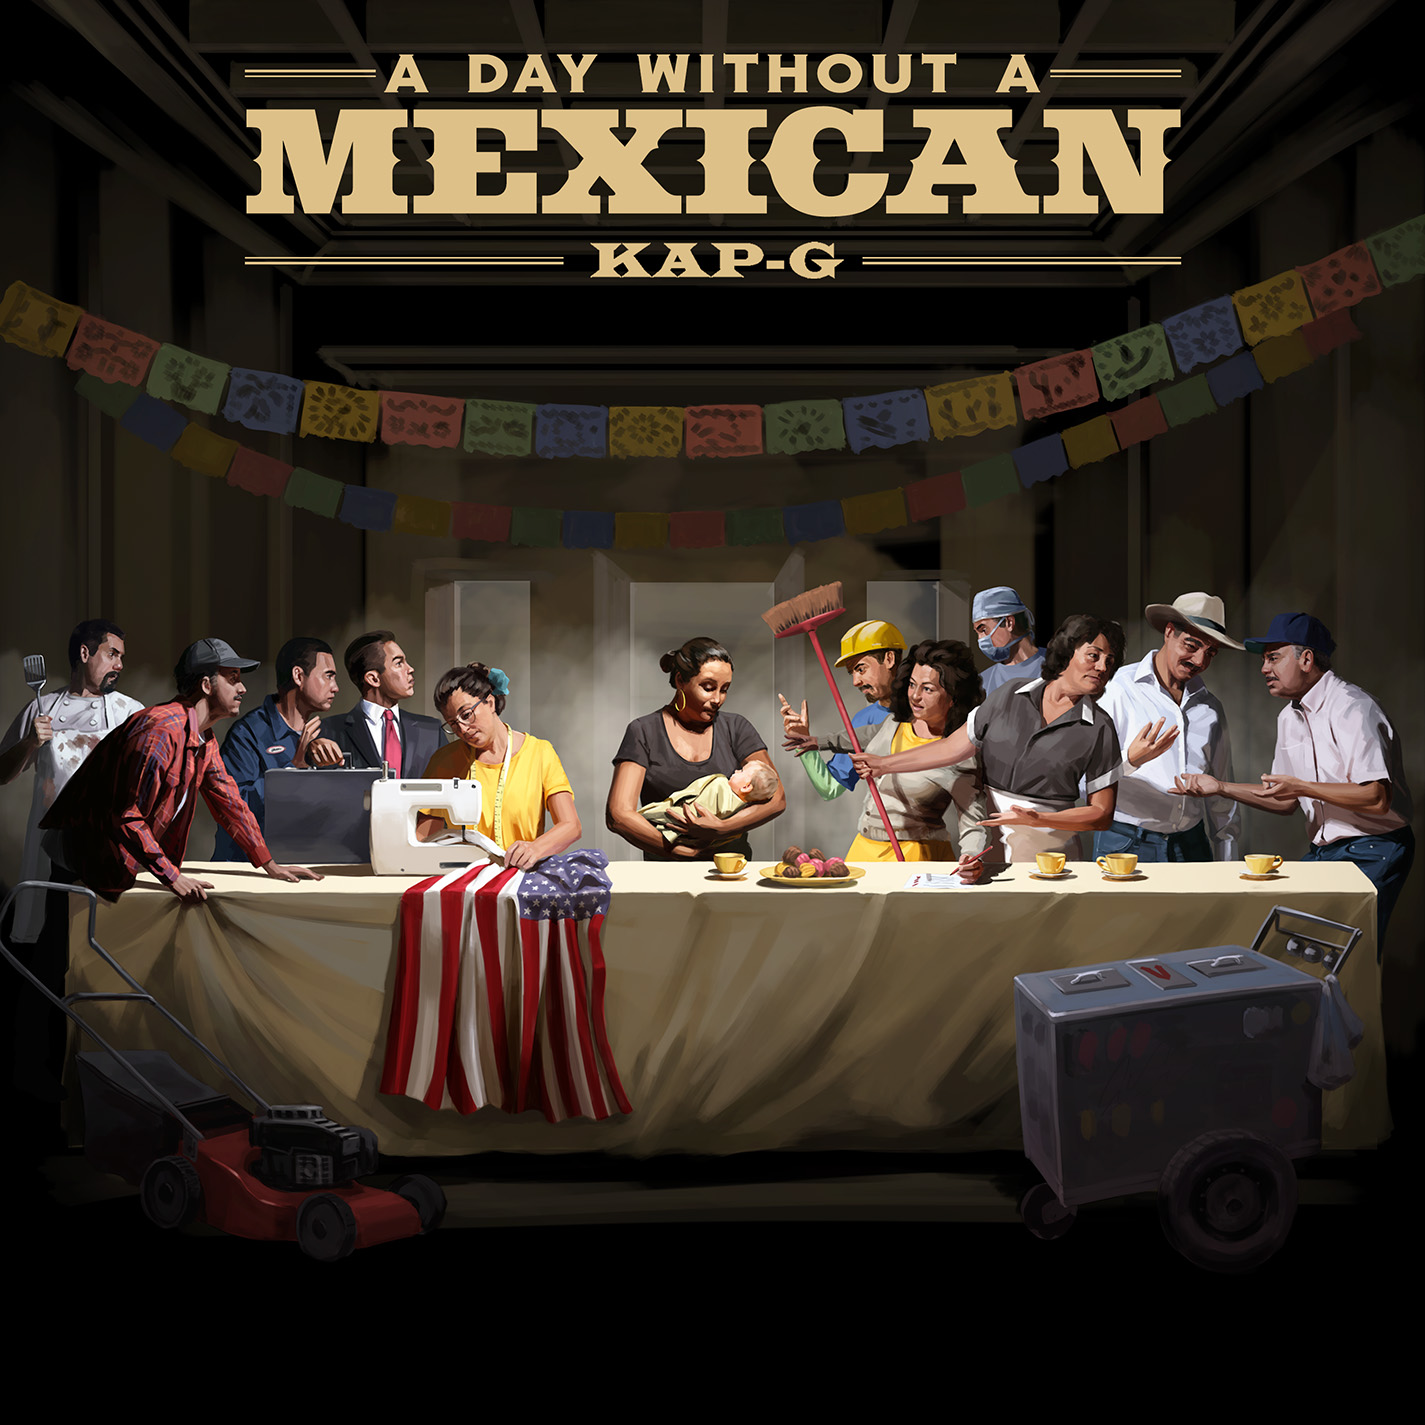 Kap G - Day Without a Mexican single art. Illustration by The Red Dress